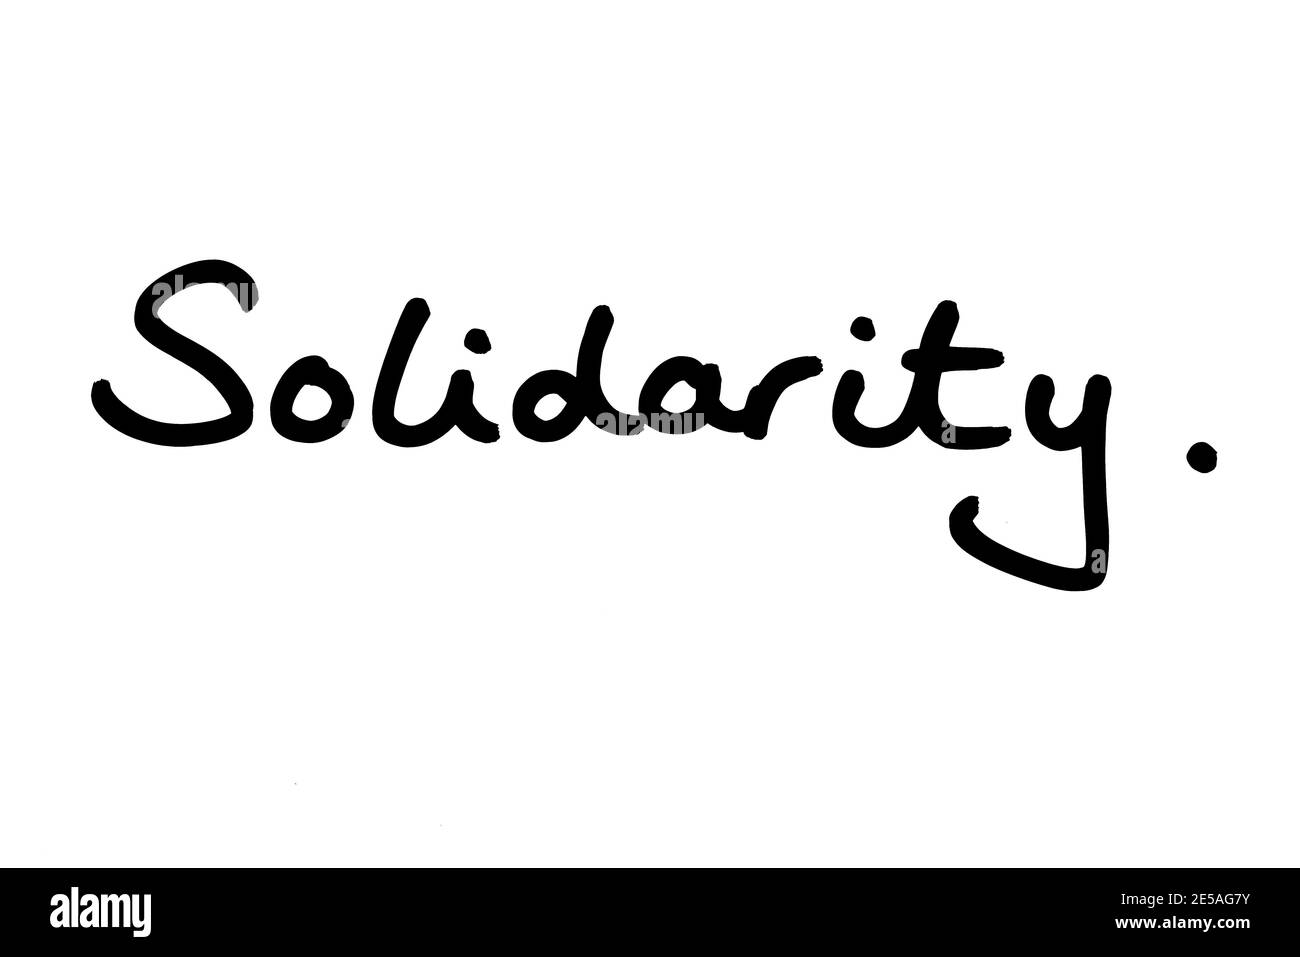 The word Solidarity, handwritten on a white background. Stock Photo